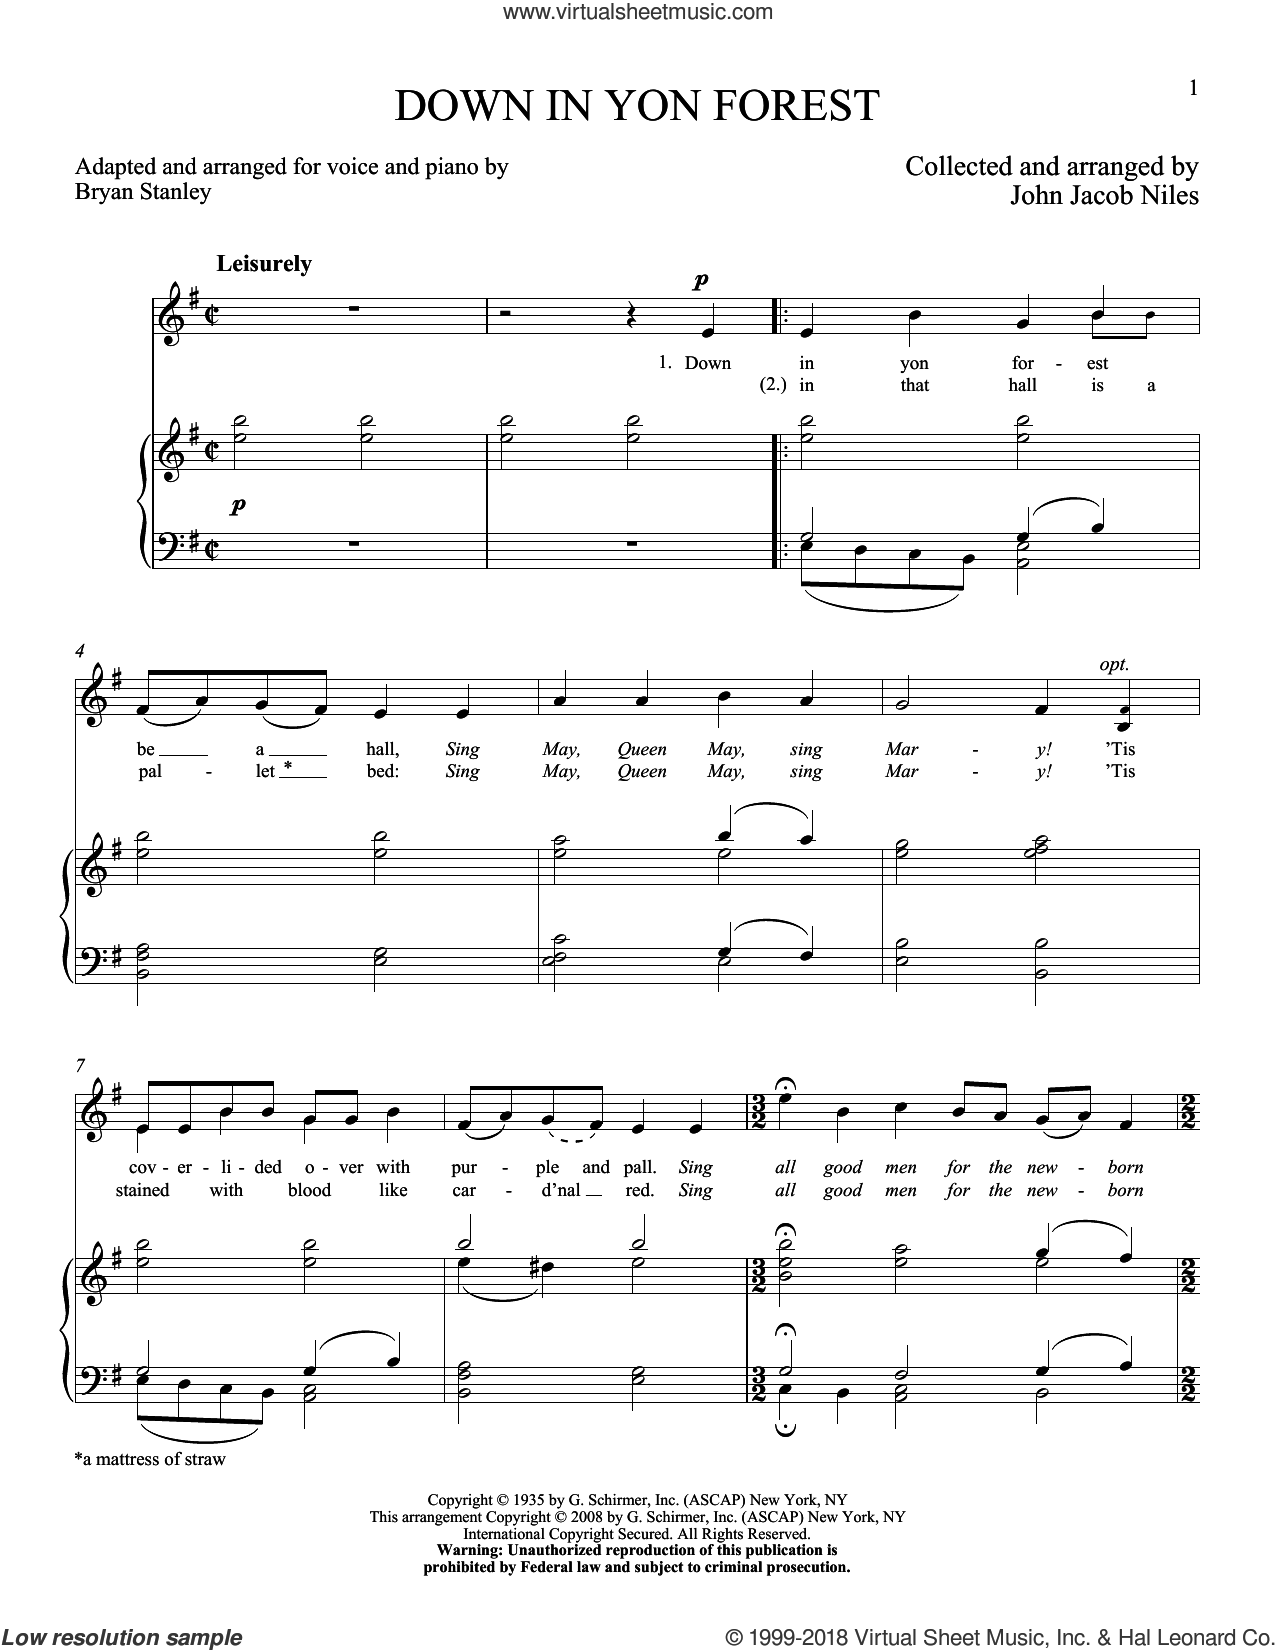 Down In Yon Forest sheet music for voice and piano (High Voice) by John Jacob Niles, classical score, intermediate skill level